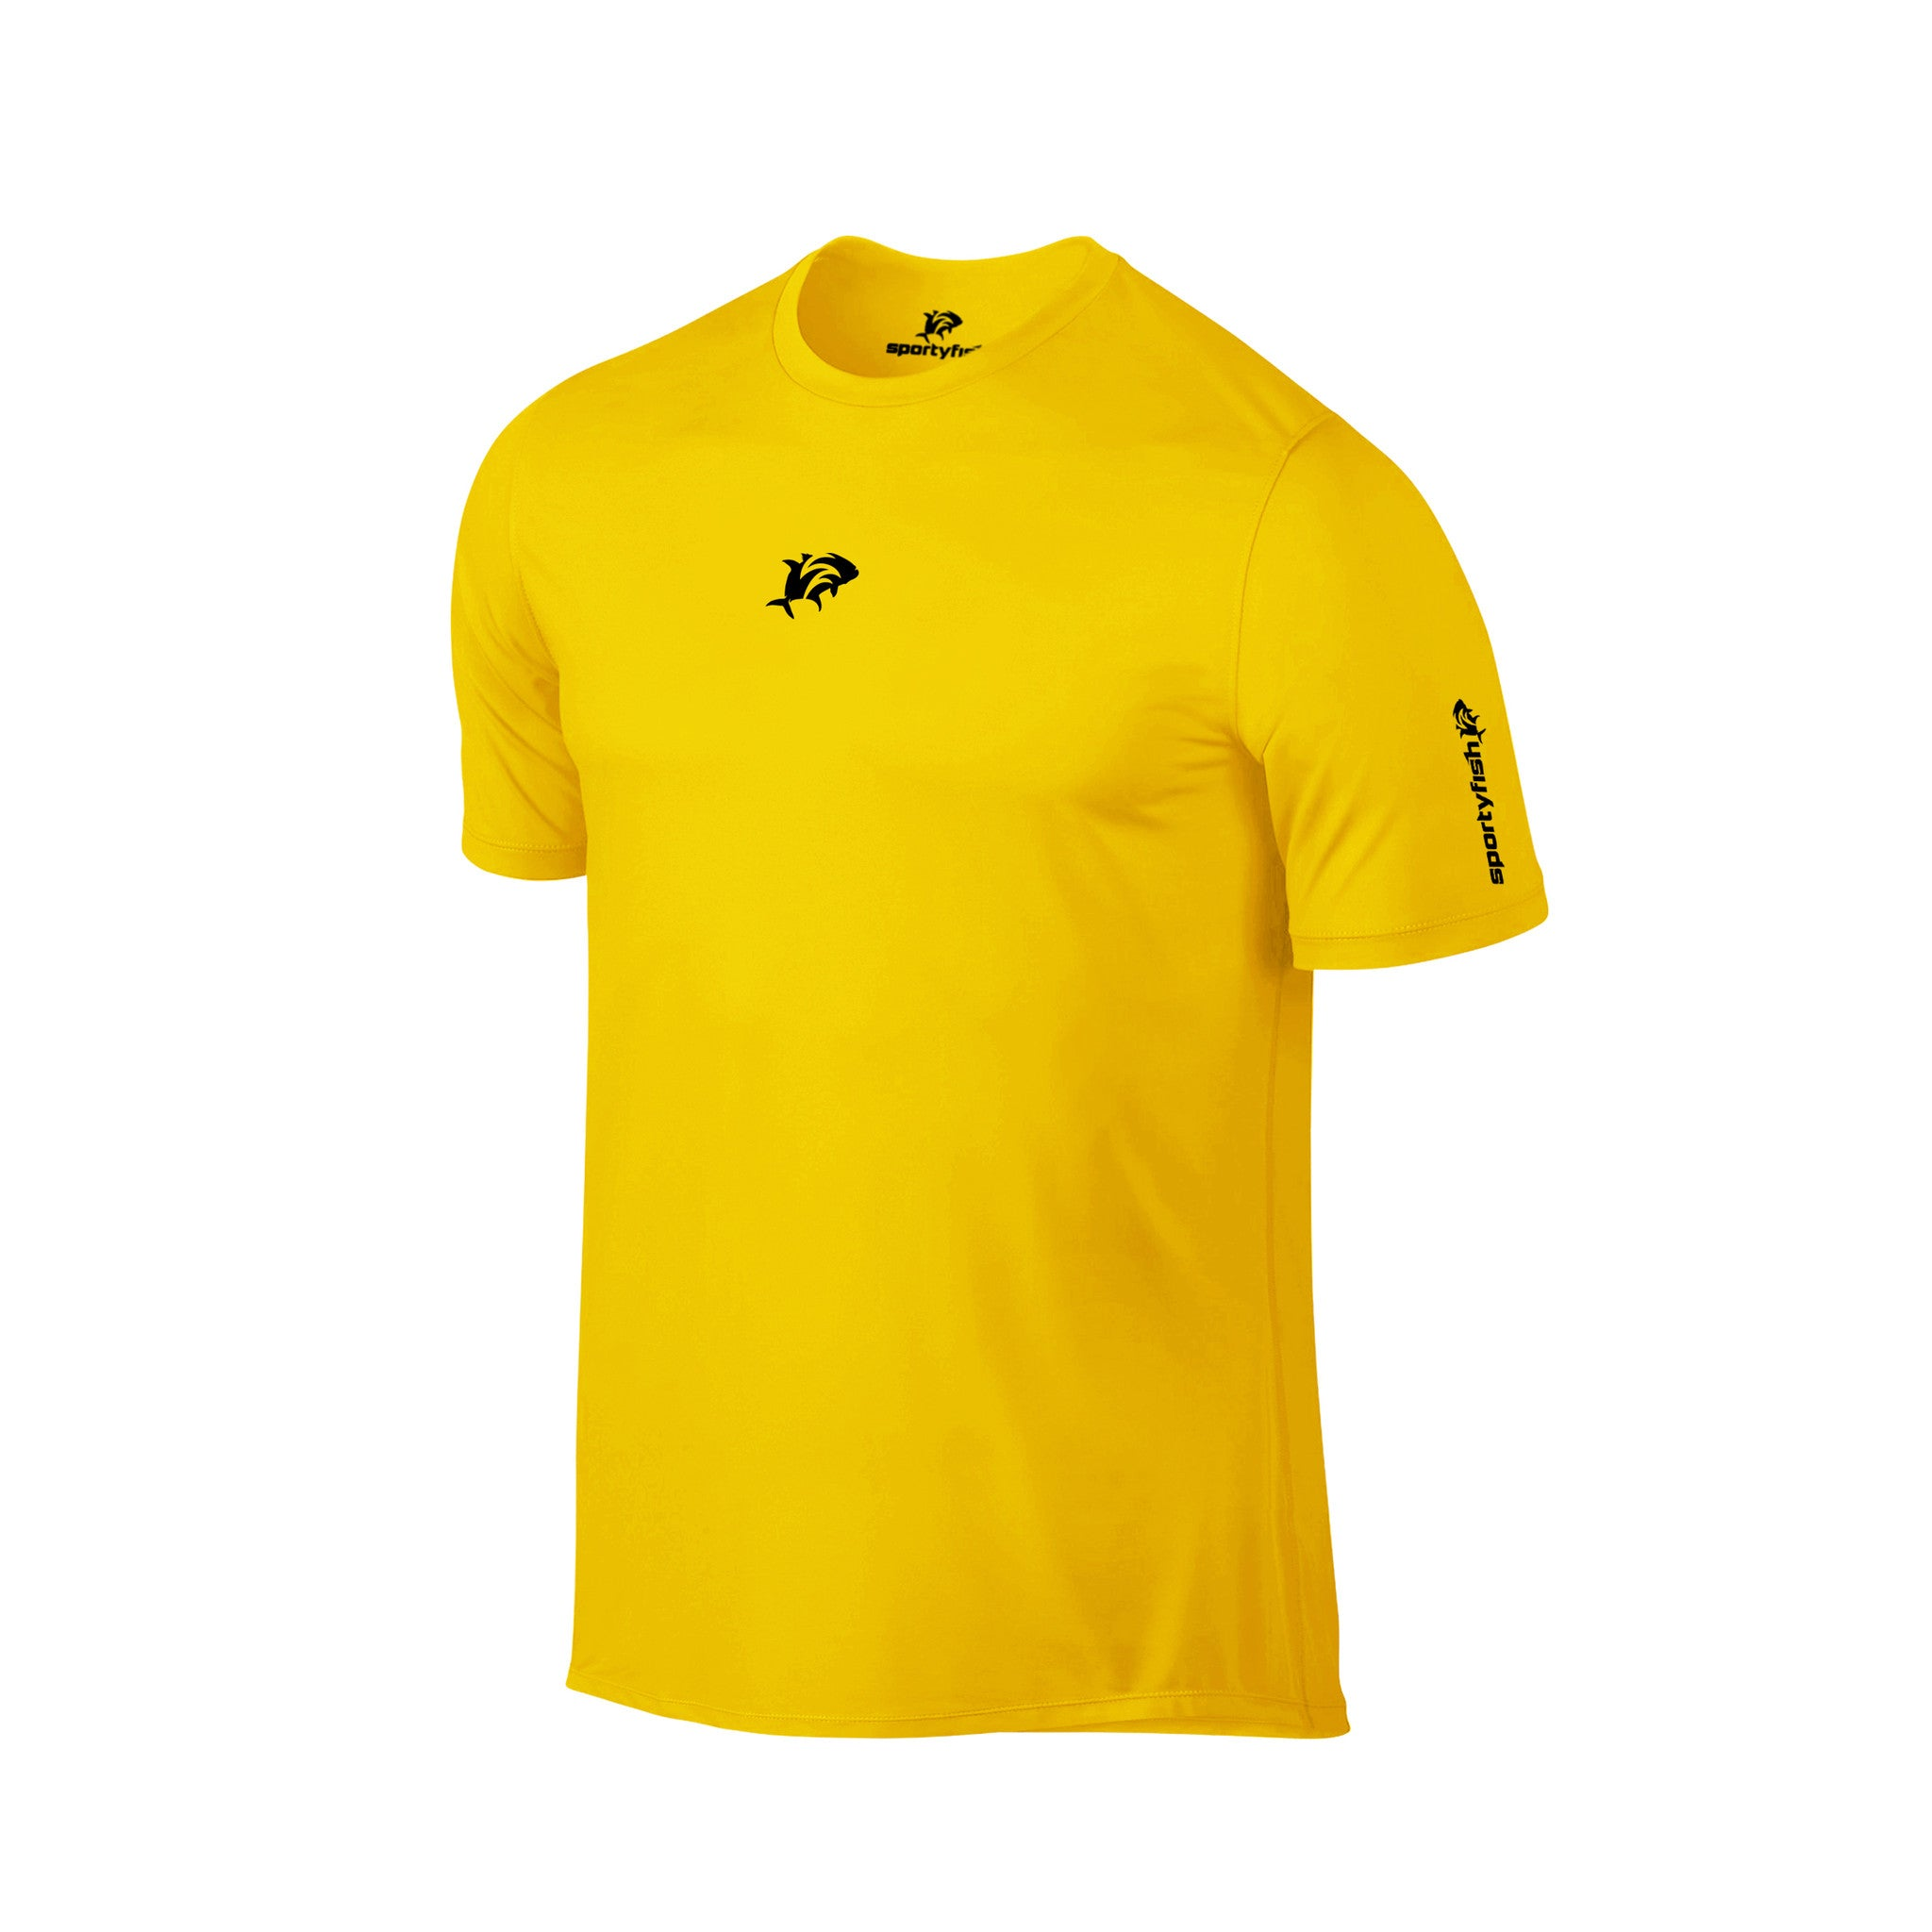 SportyFish Ink Series Yellow T-shirt: Wahoo front view